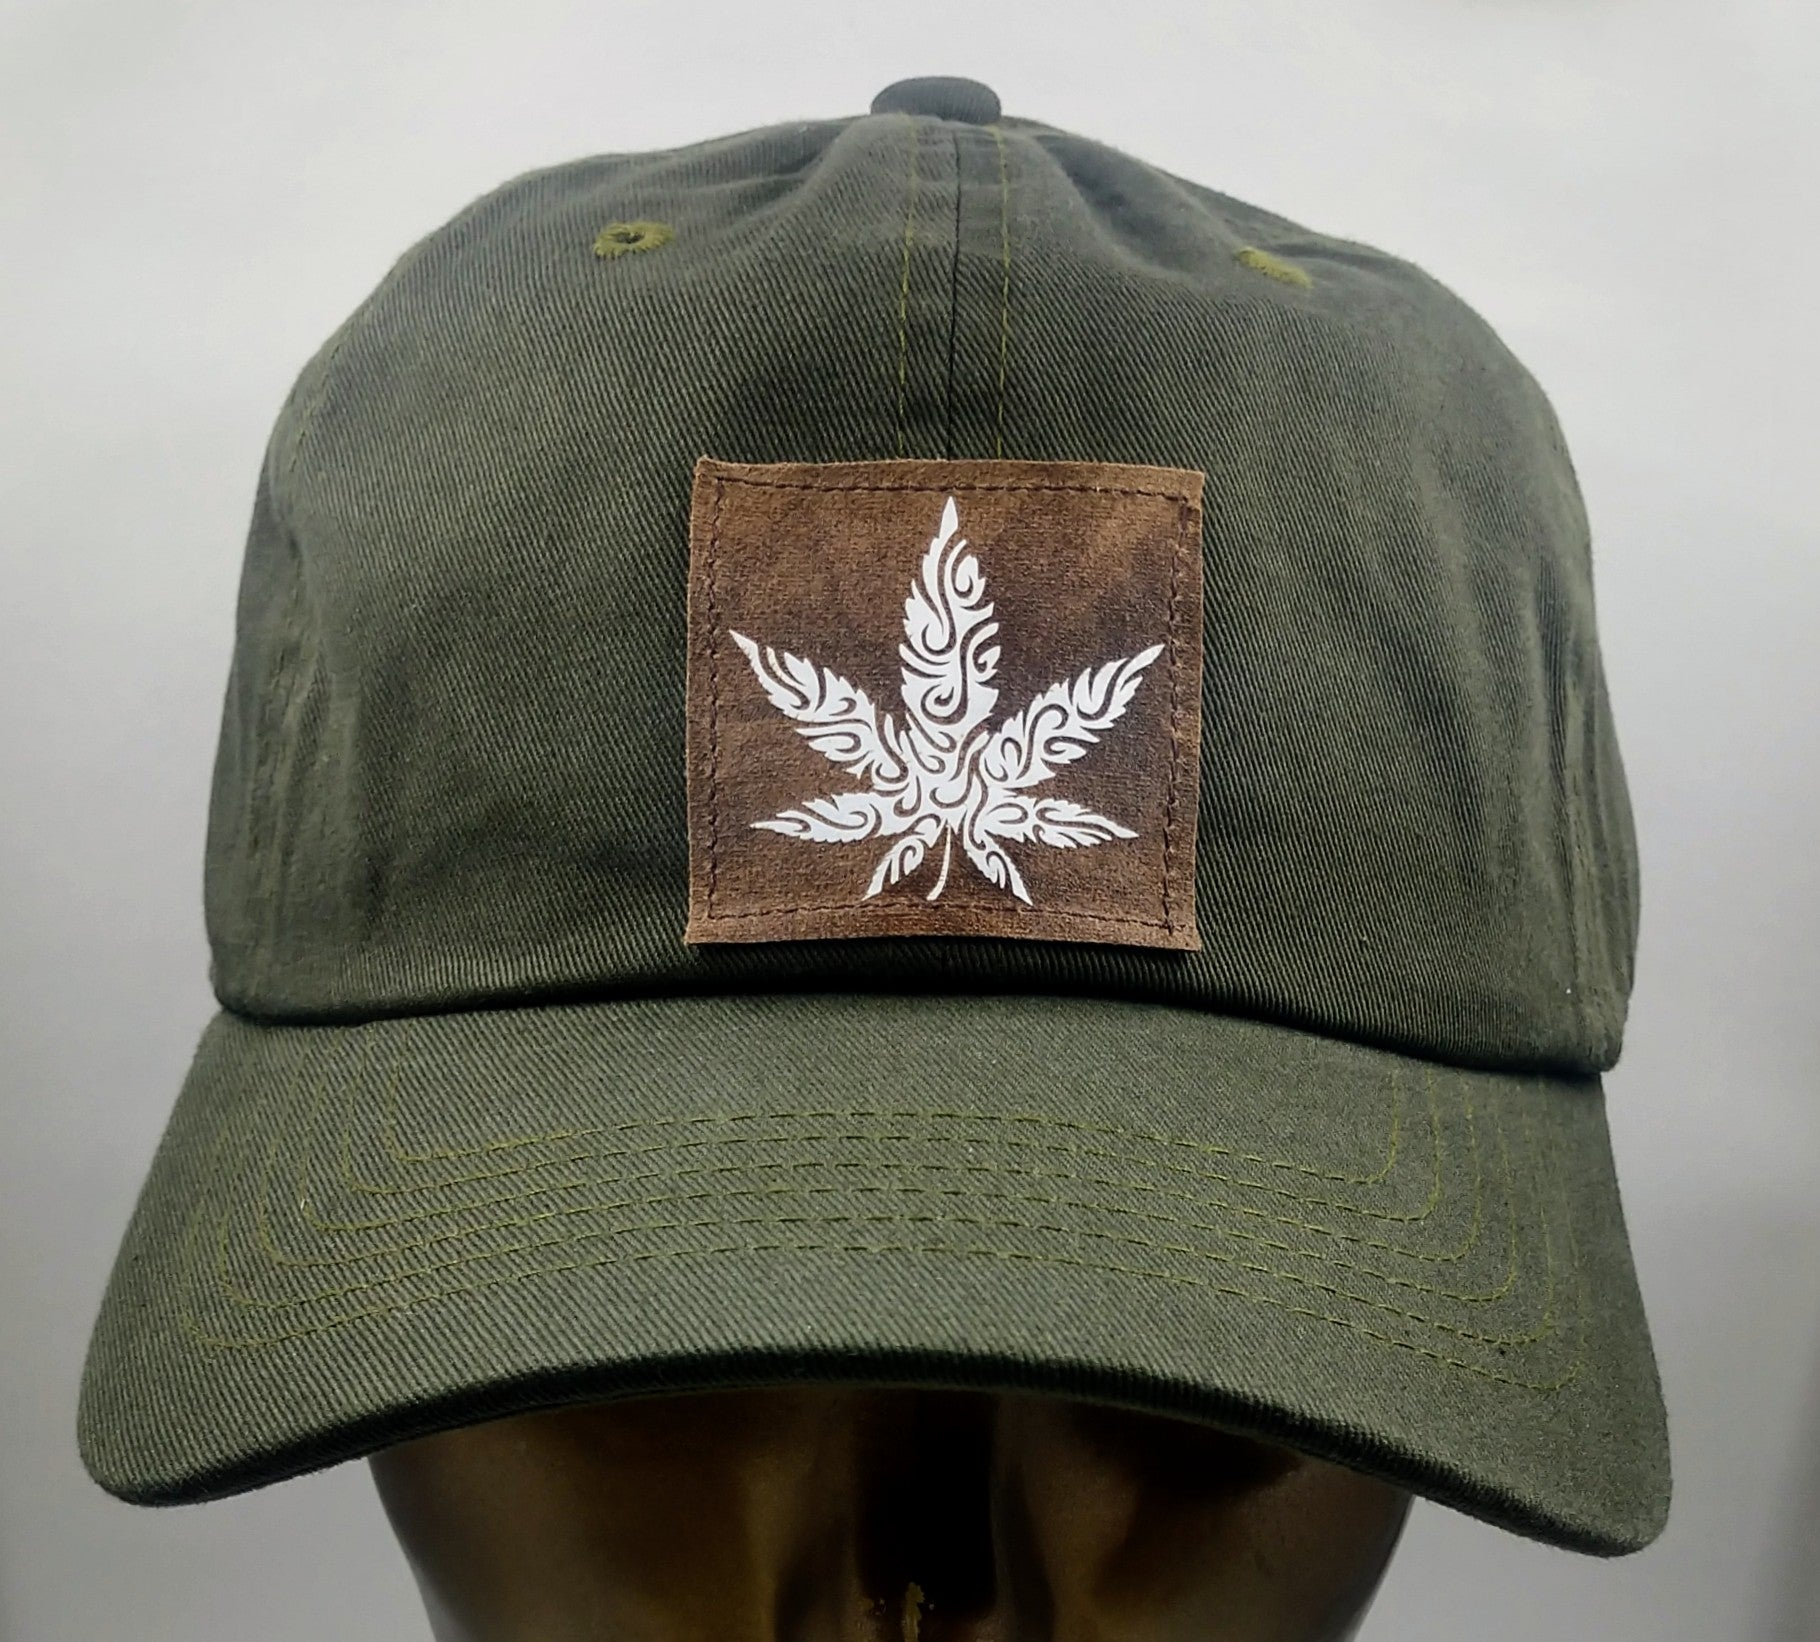 Olive dad hat with handmade cannabis patch